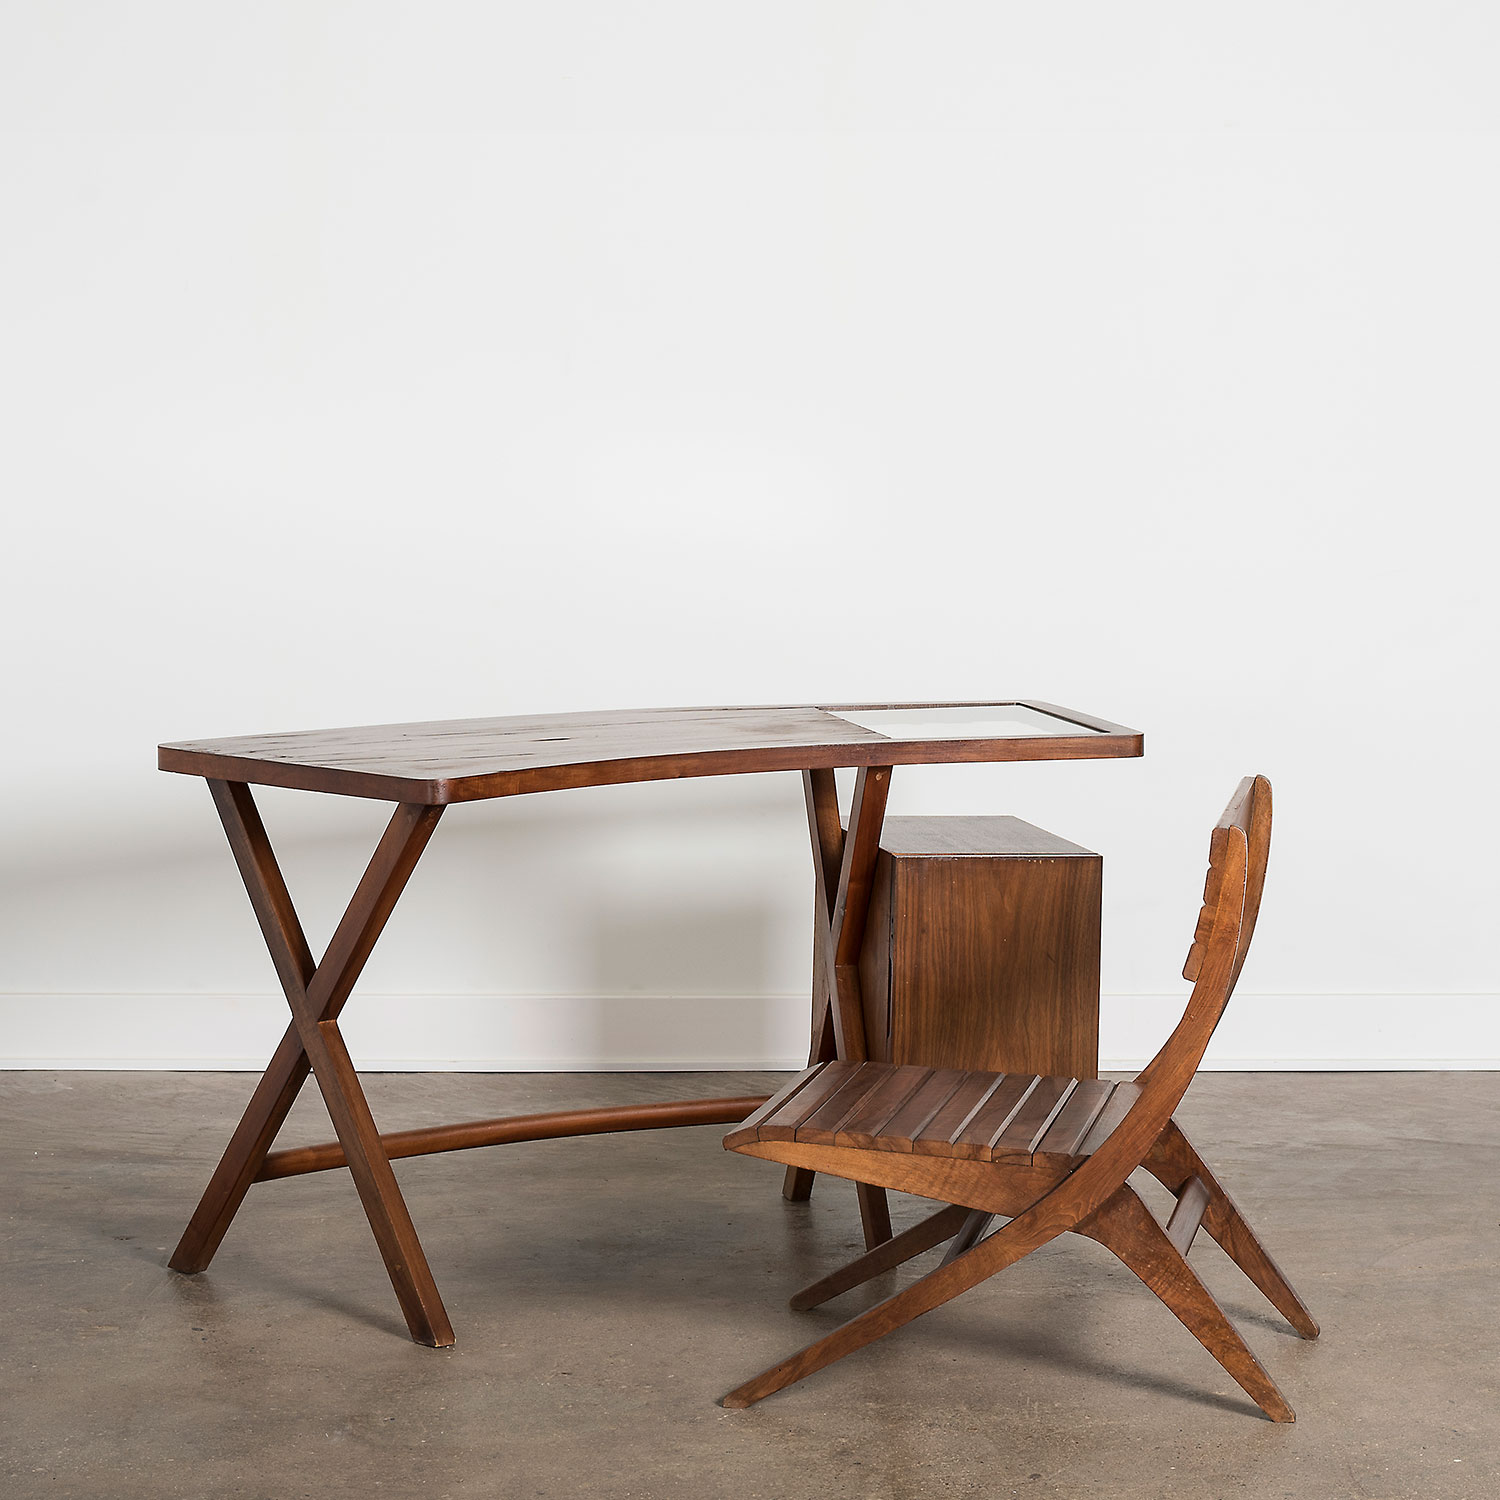 Franco Albini desk and chairs designed for Villa Neuffer made in 1940 at Italian design and furniture gallery Casati Gallery